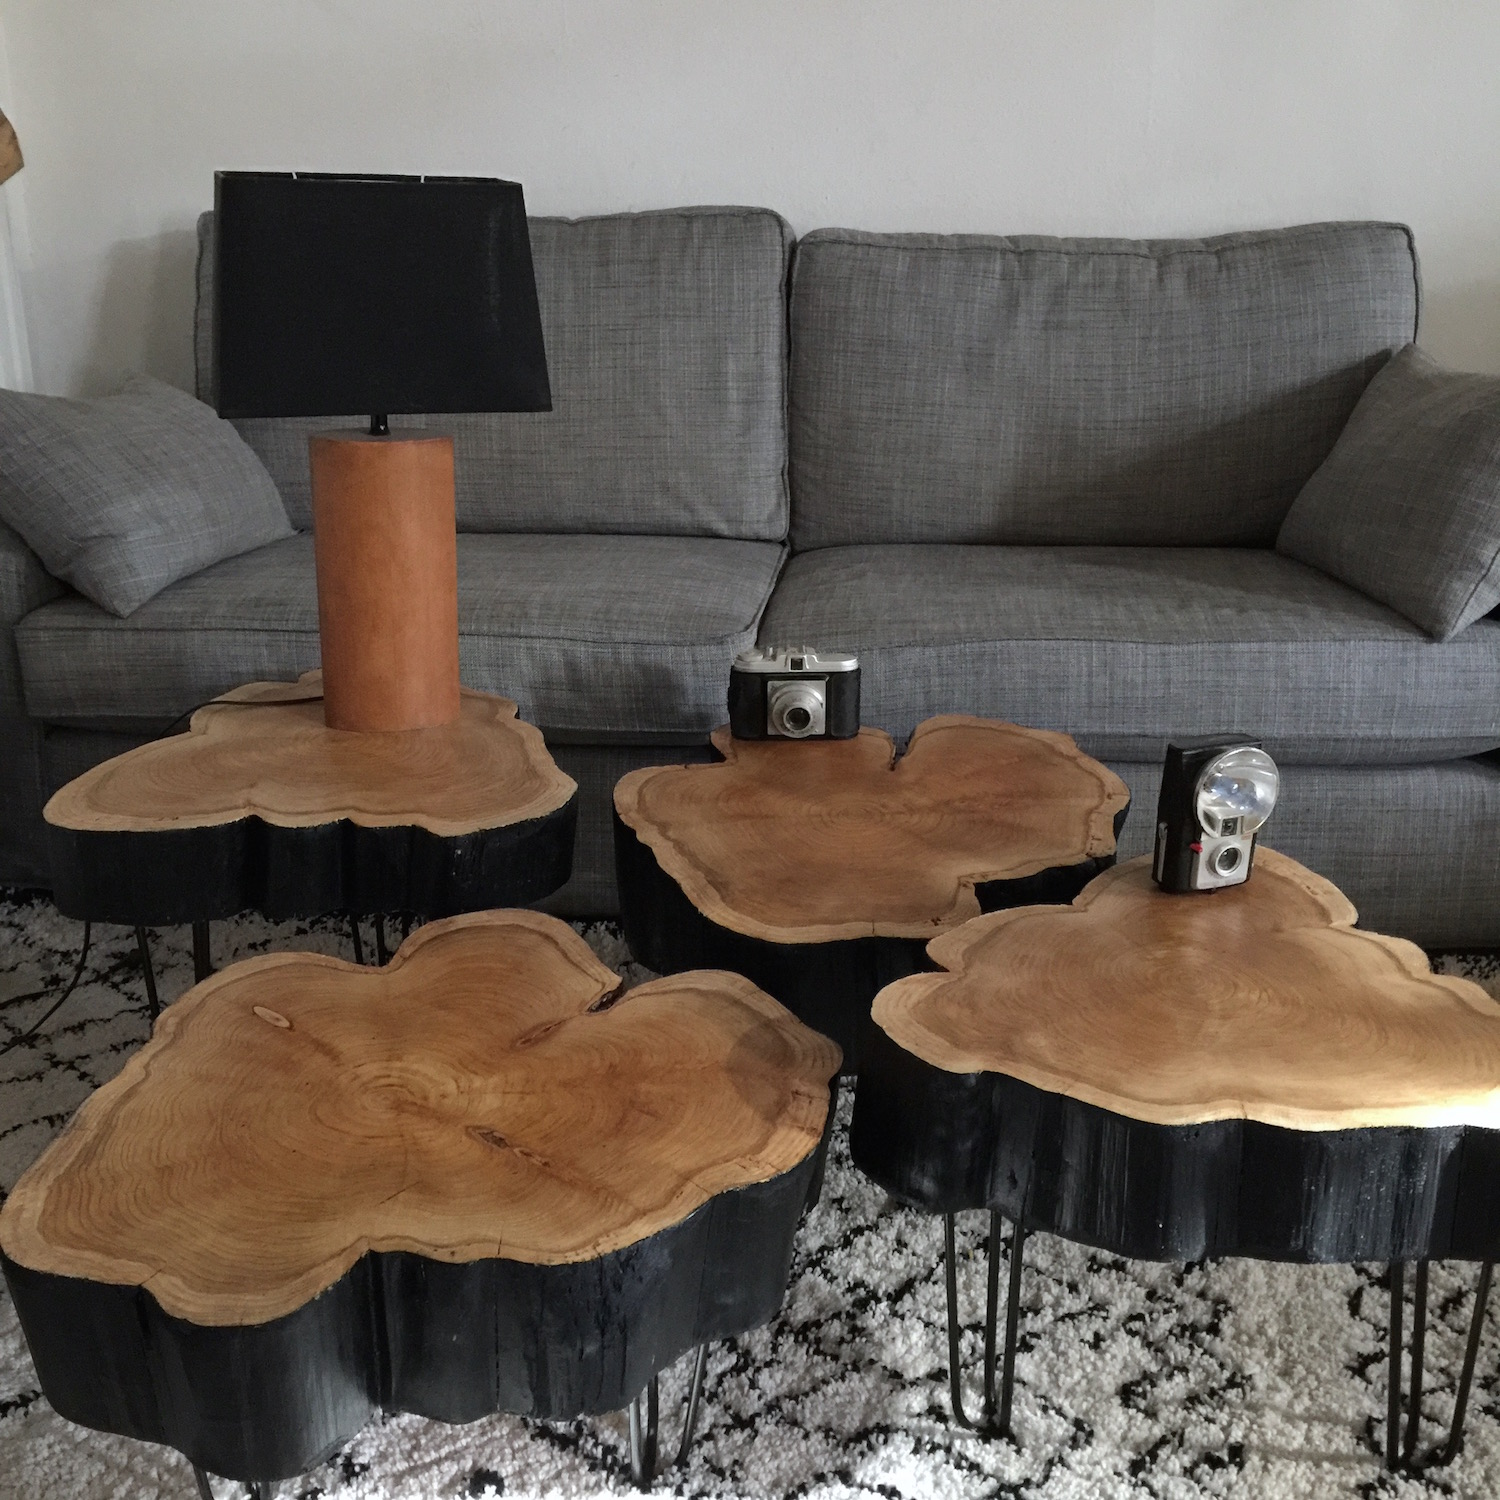 rondin de bois table de chevet diy une table avec des rondins de bois par sophie ferjani le. Black Bedroom Furniture Sets. Home Design Ideas